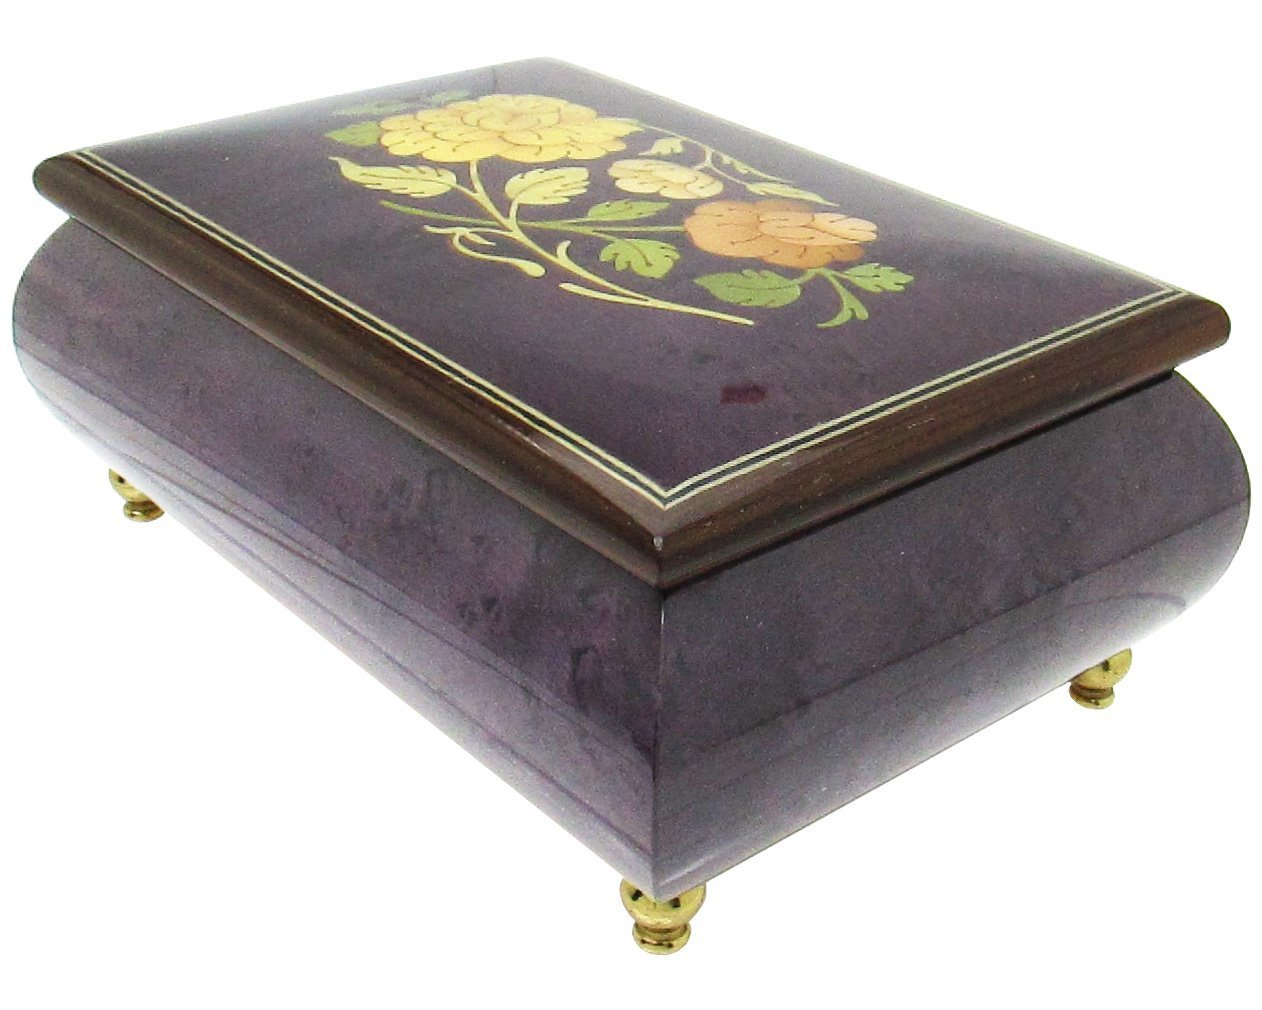 "Primary image for Italian Music Box, 6"", Floral Inlay, Plum"